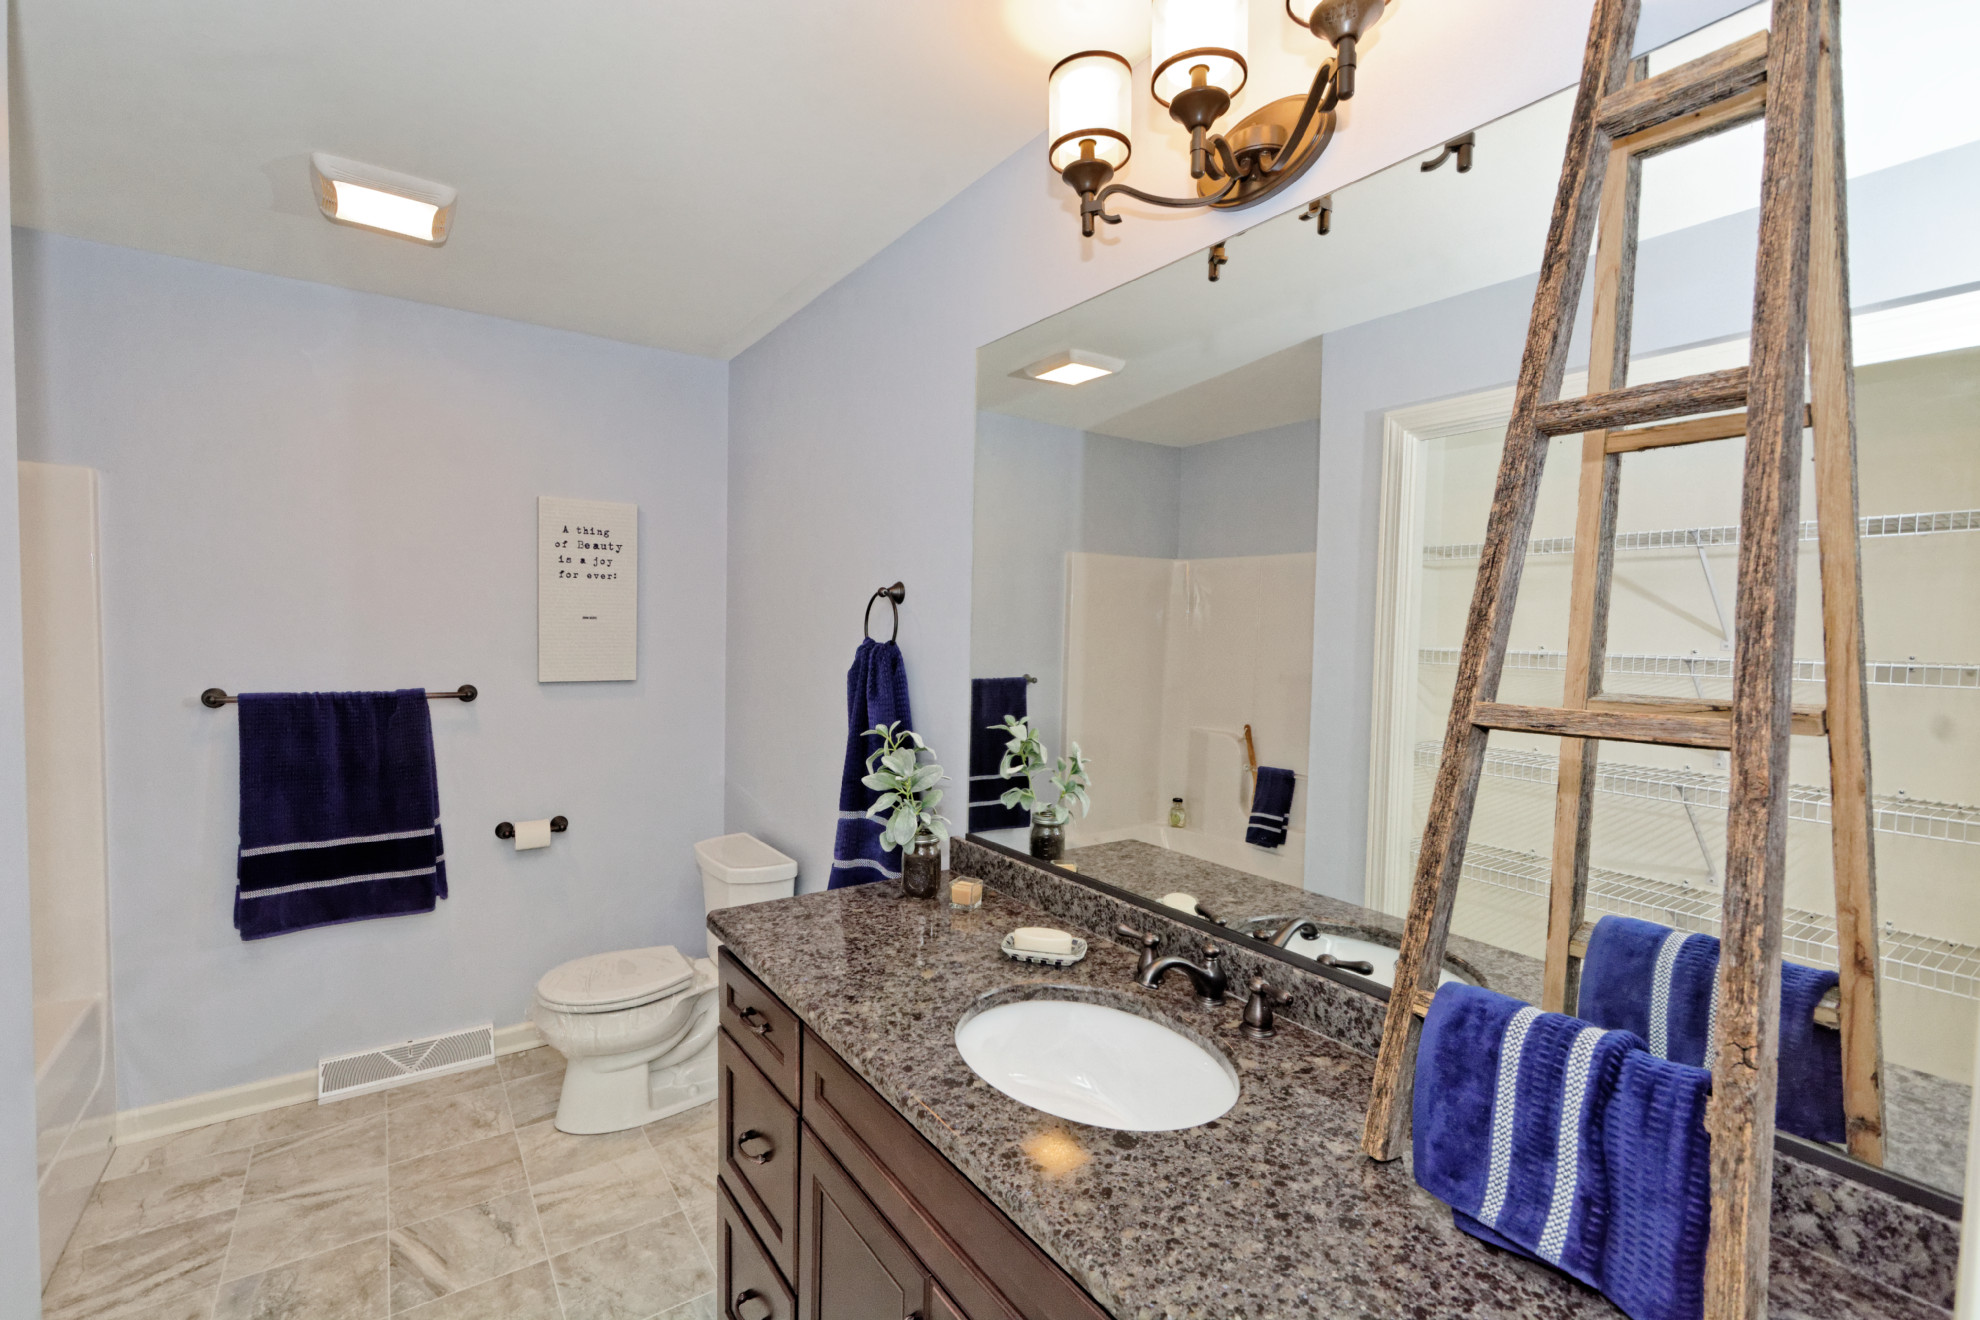 hanging towels in the bathroom